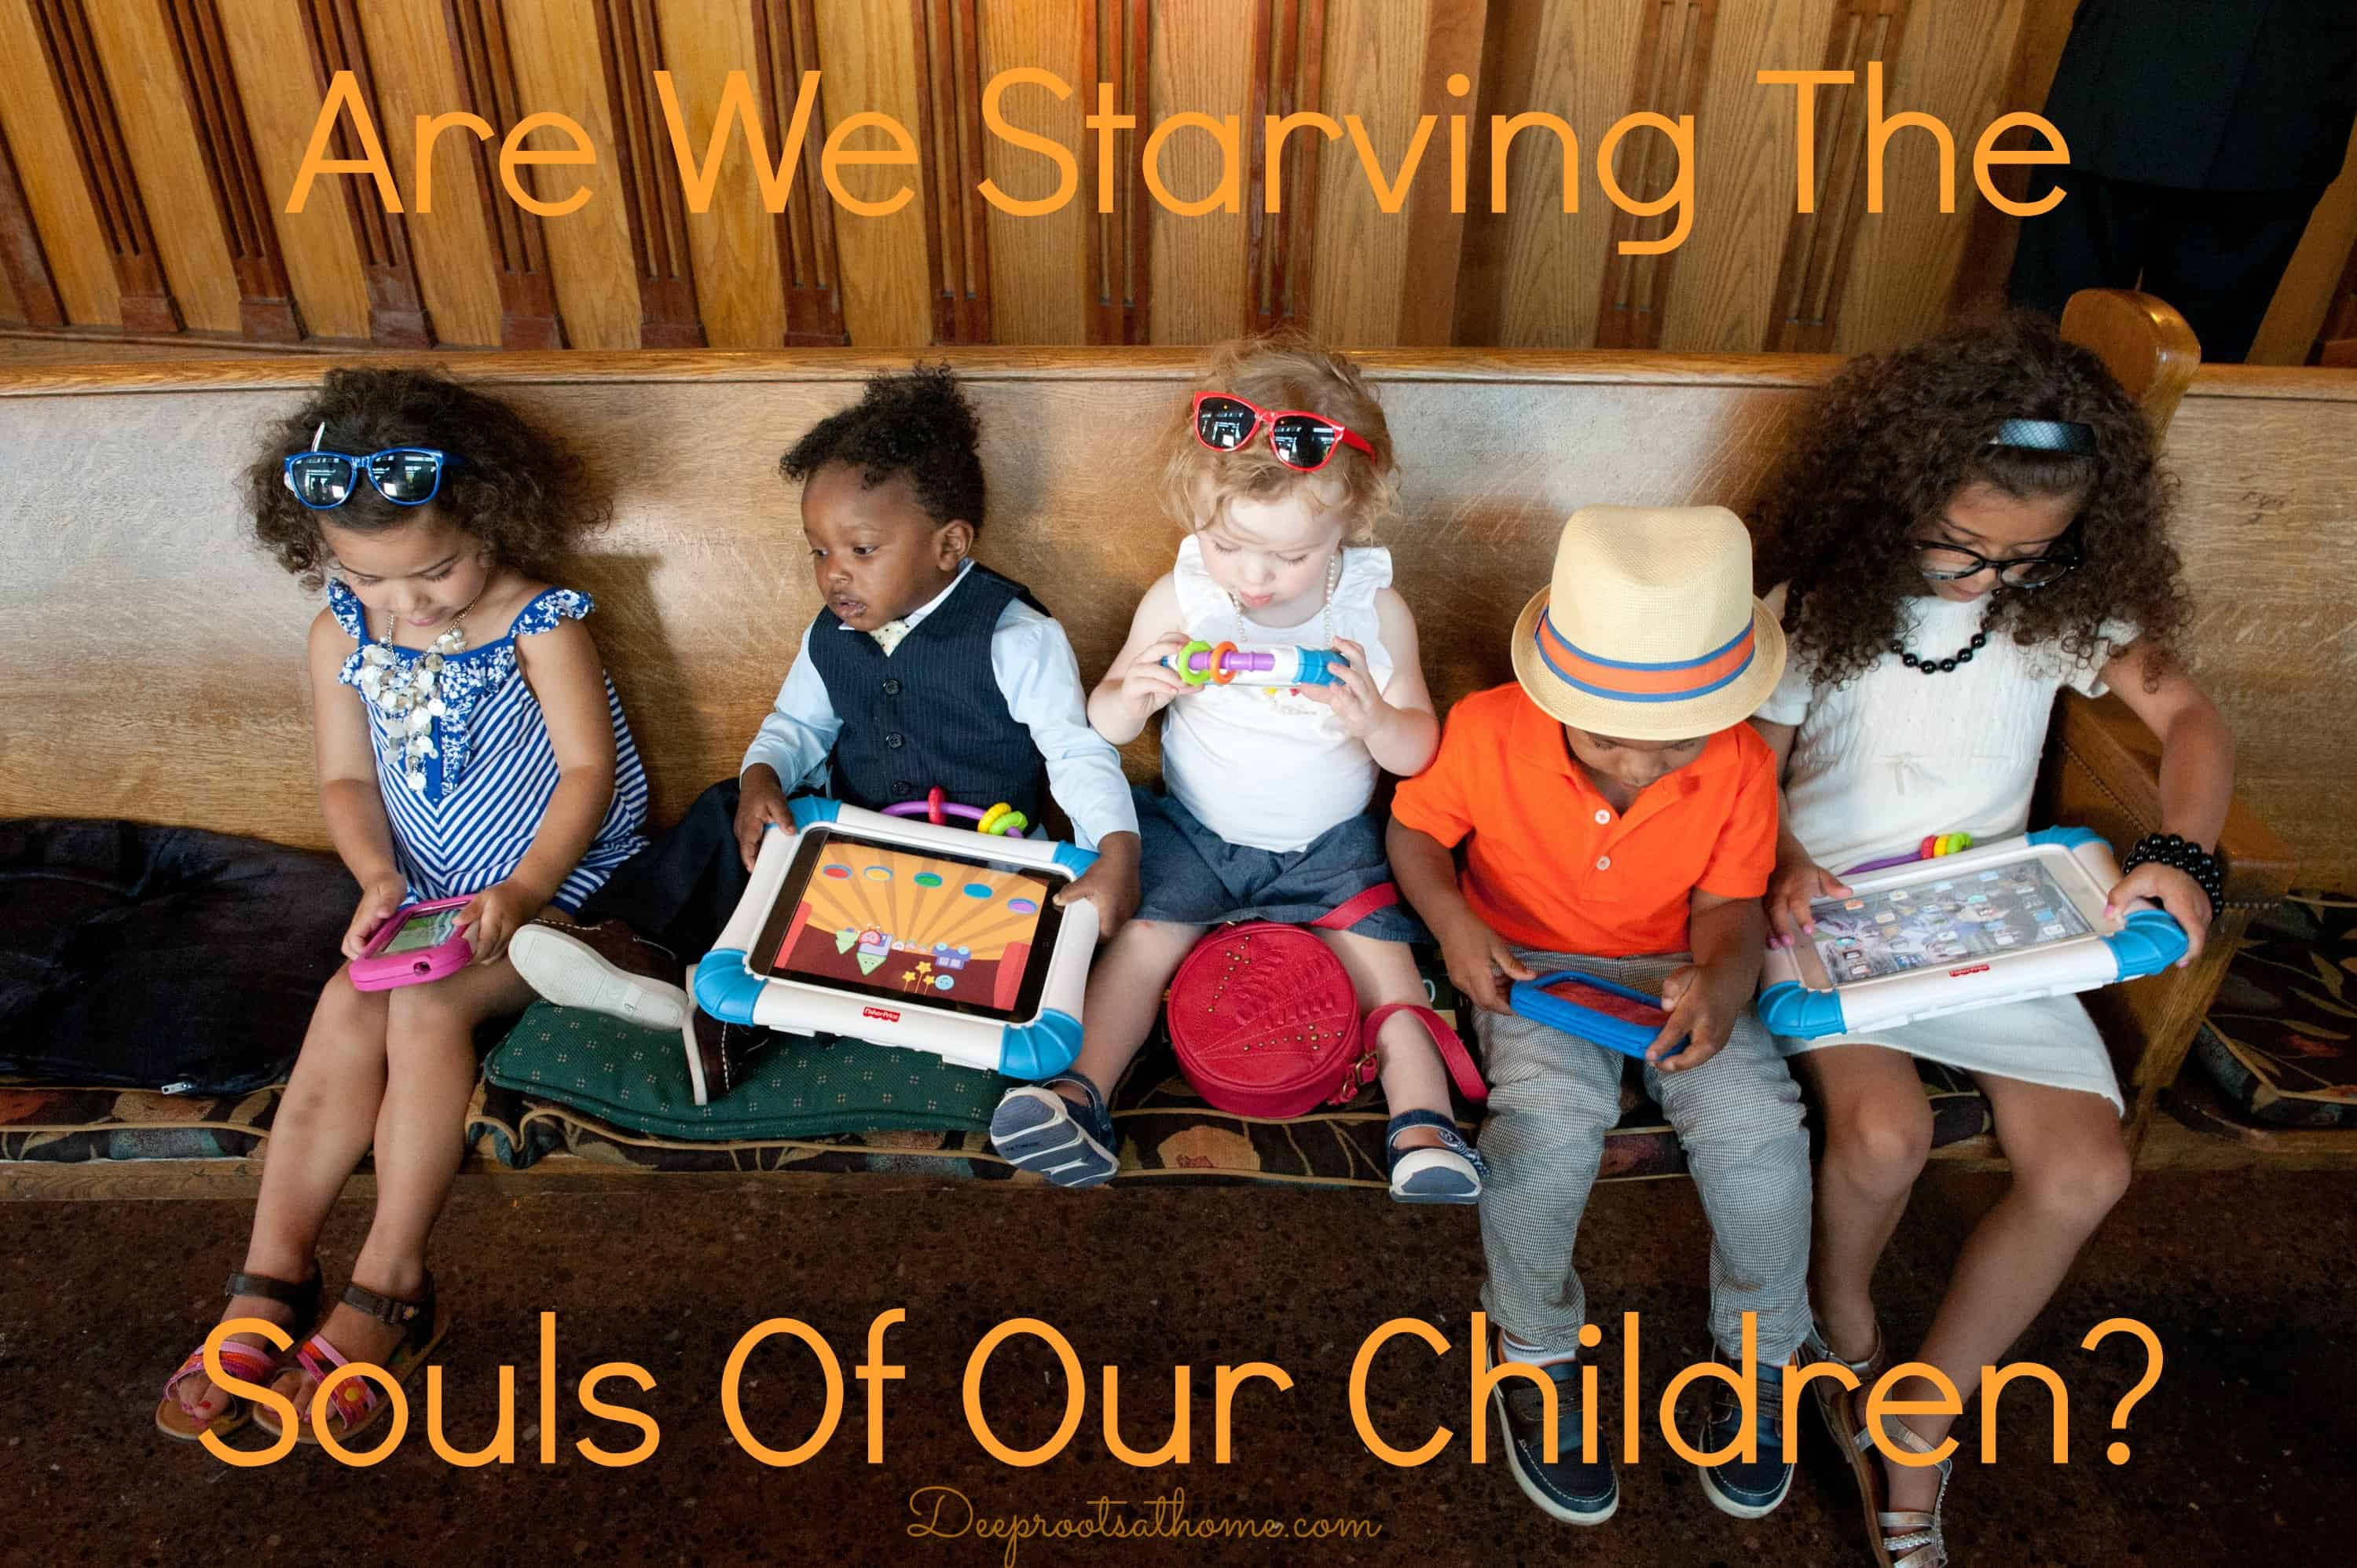 Are We Starving The Hearts Of Our Children? 5 toddlers engrossed with their electronic devices